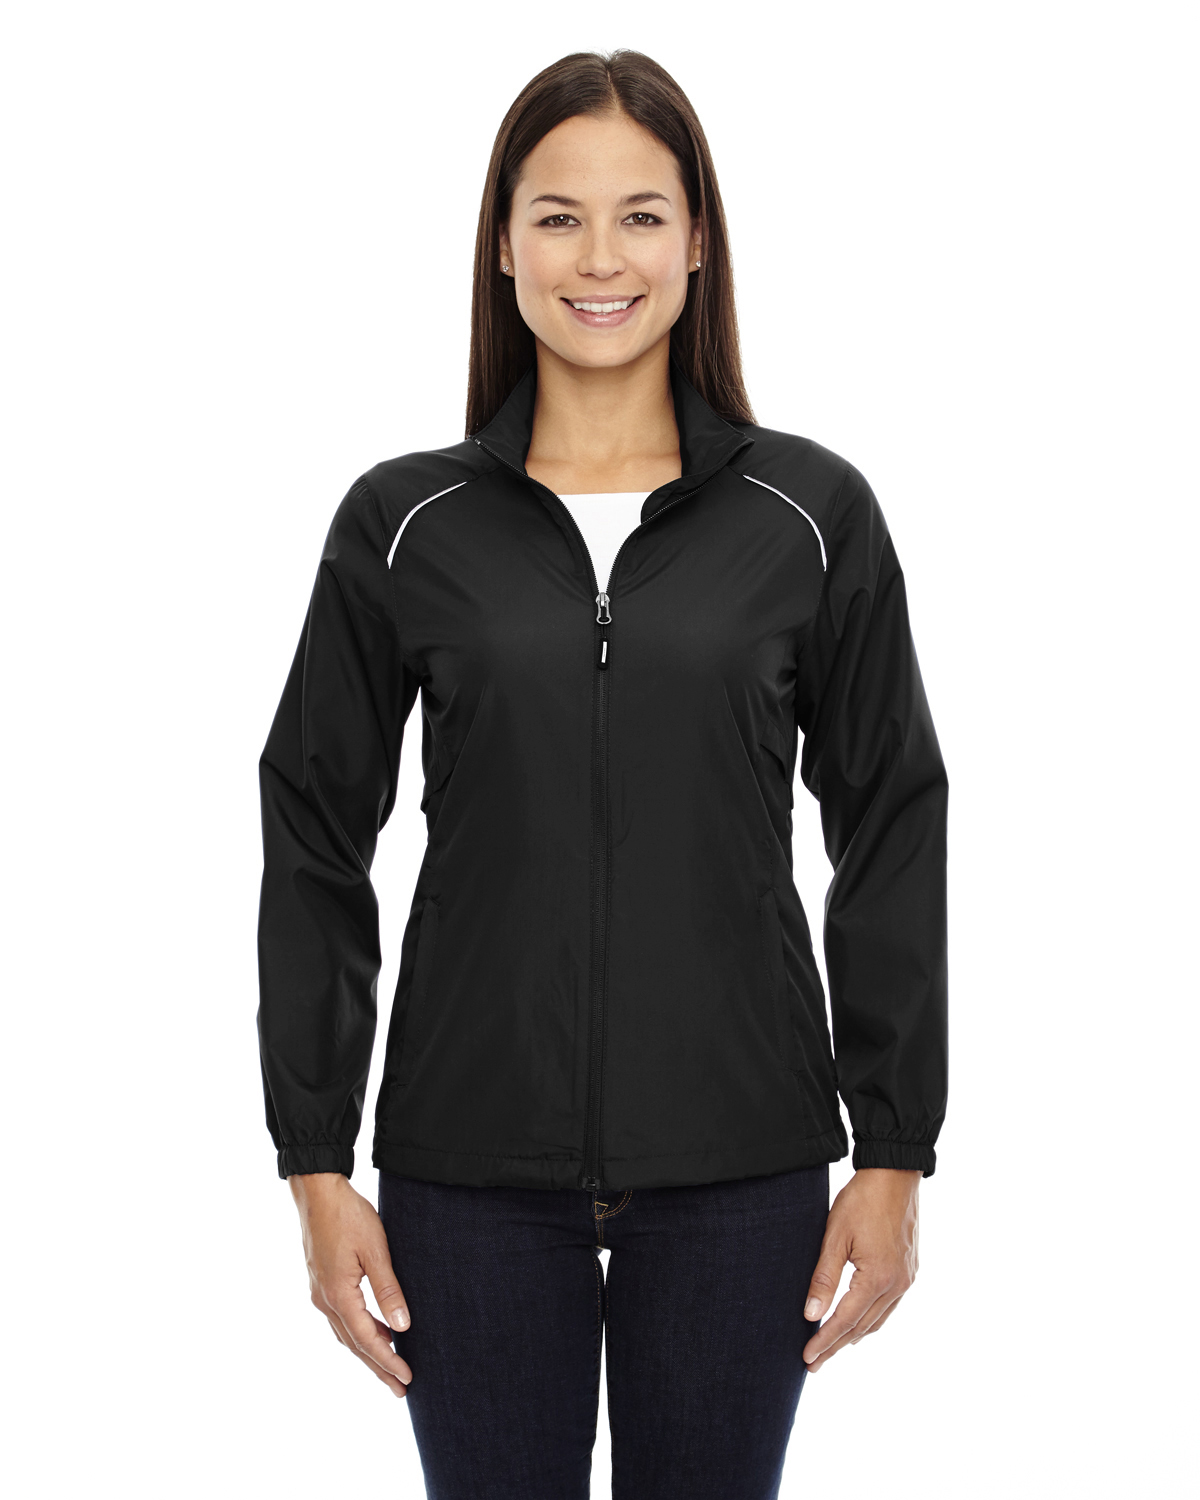 Ash City Core 365 Womens Motivate Unlined Lightweight Jacket Black 703 Small